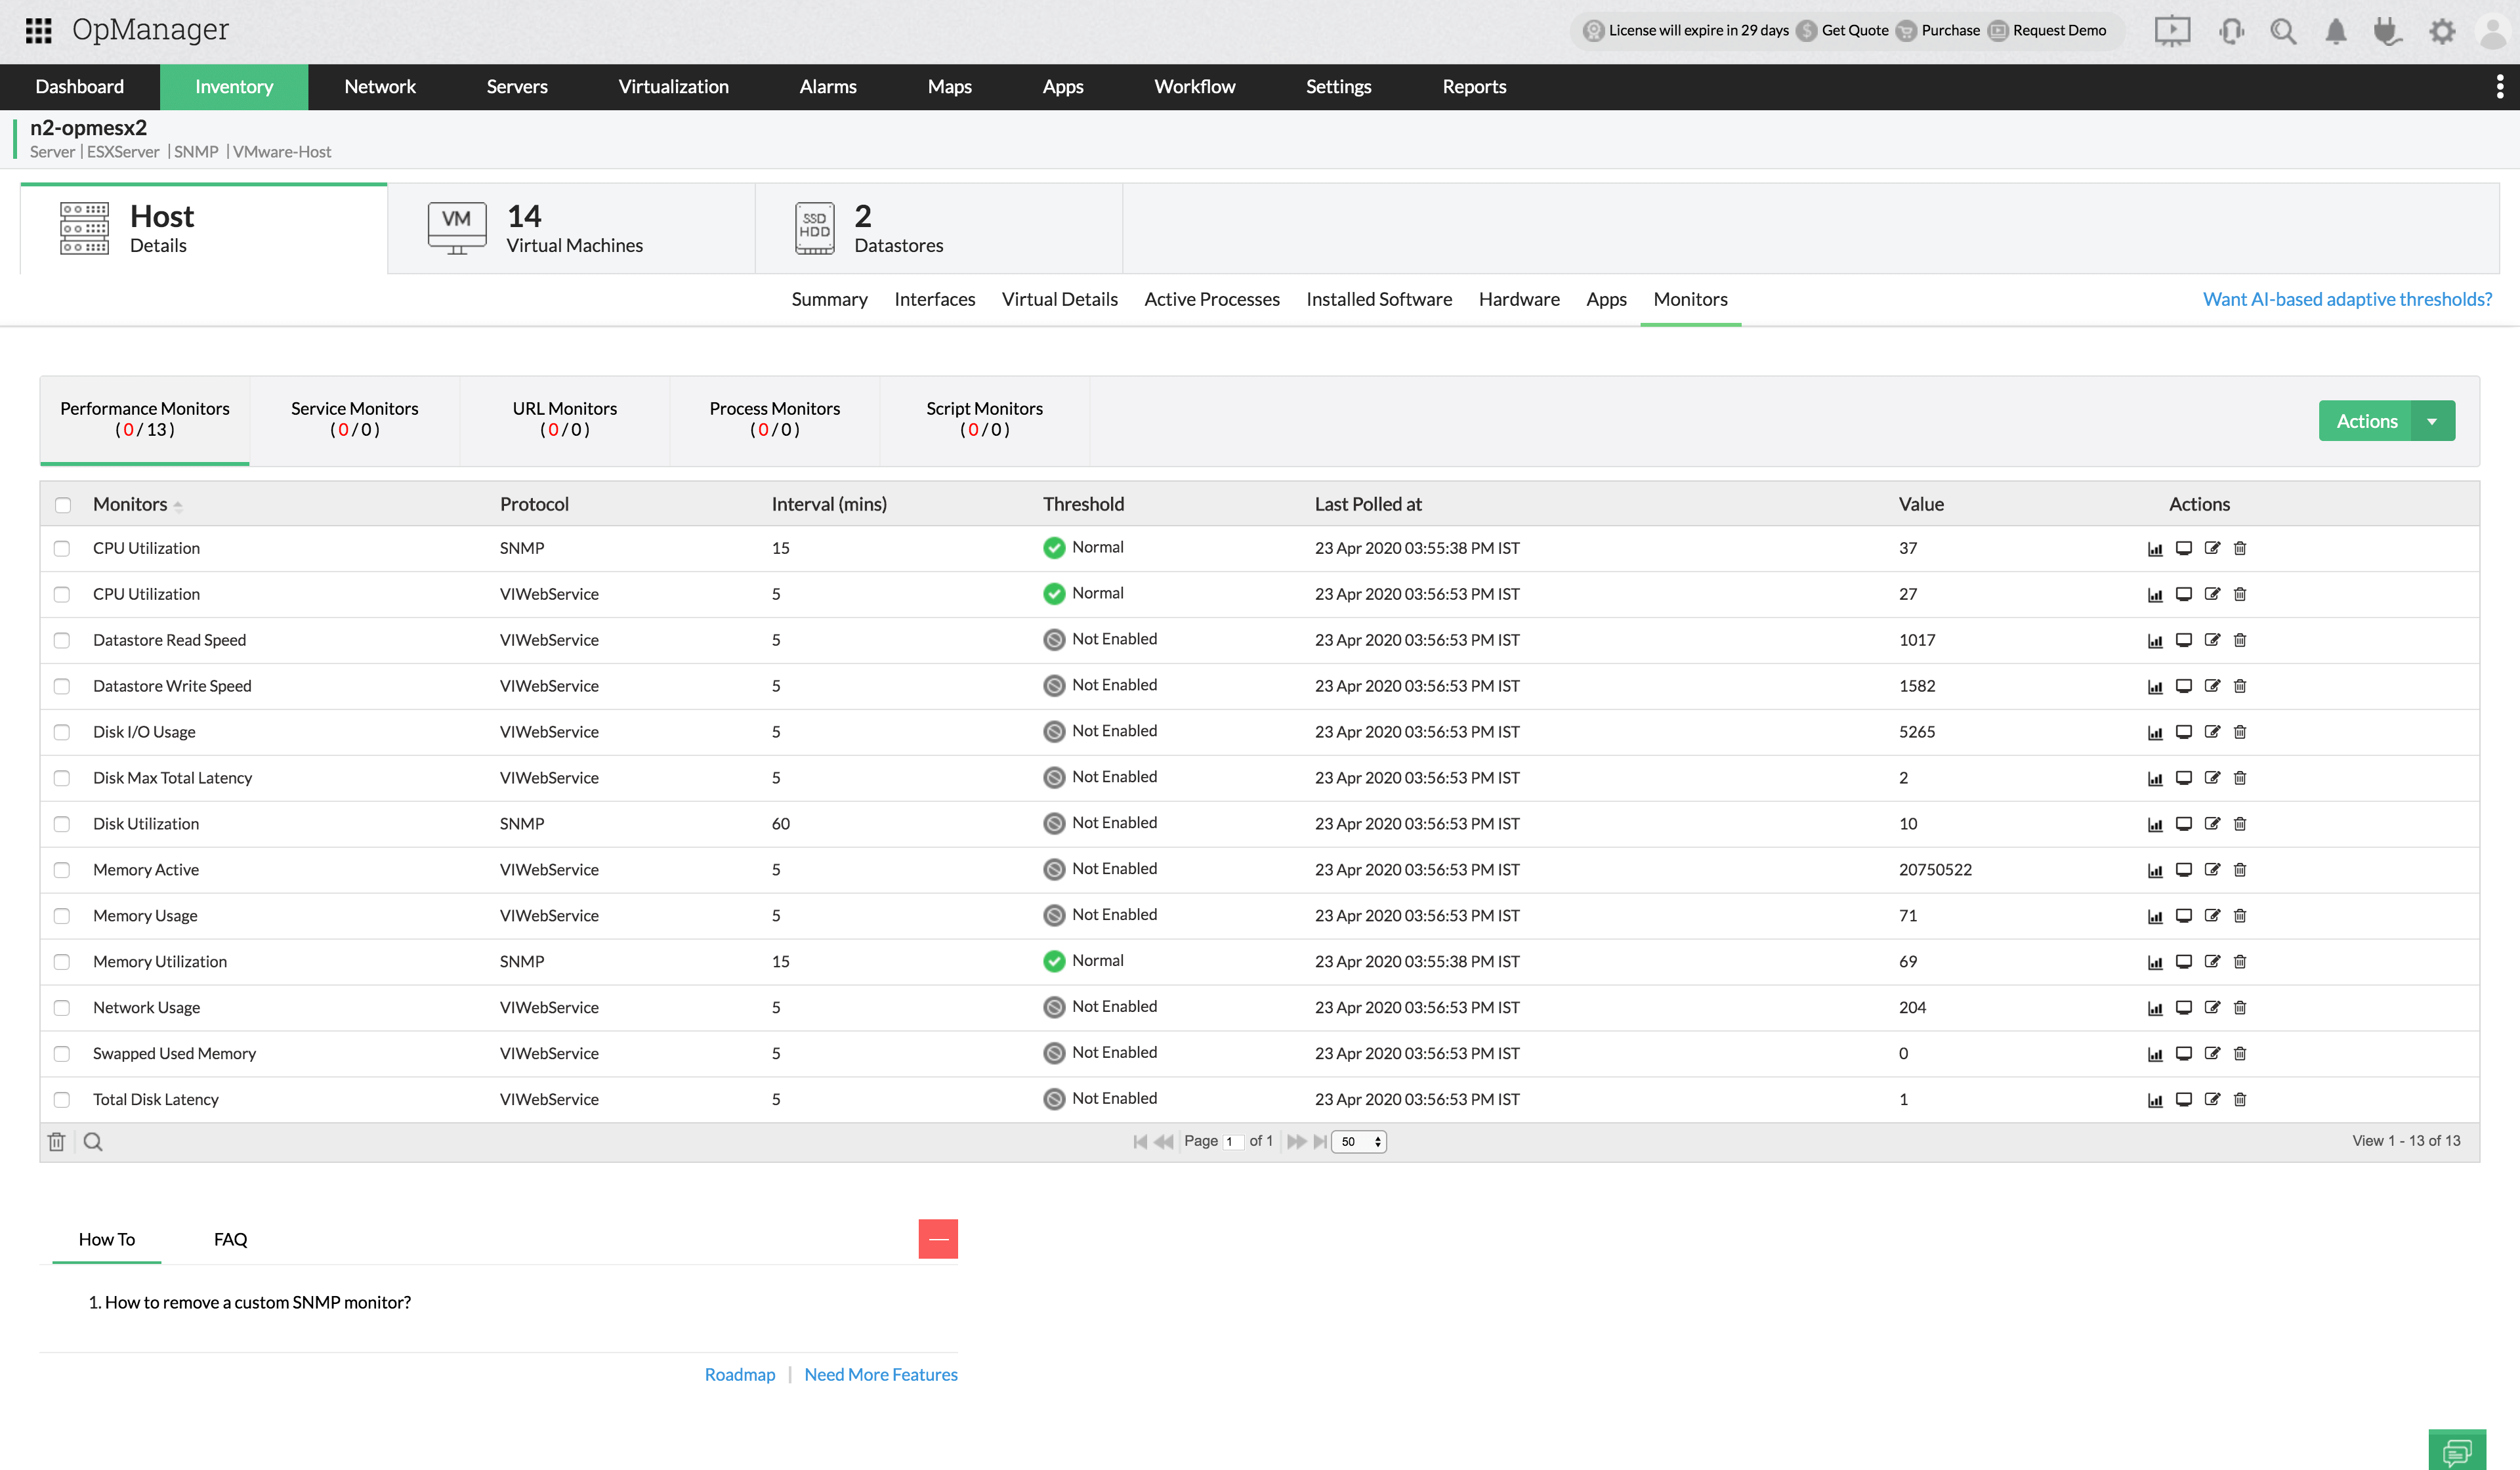 VMware ESXi SNMP Monitoring - ManageEngine OpManager